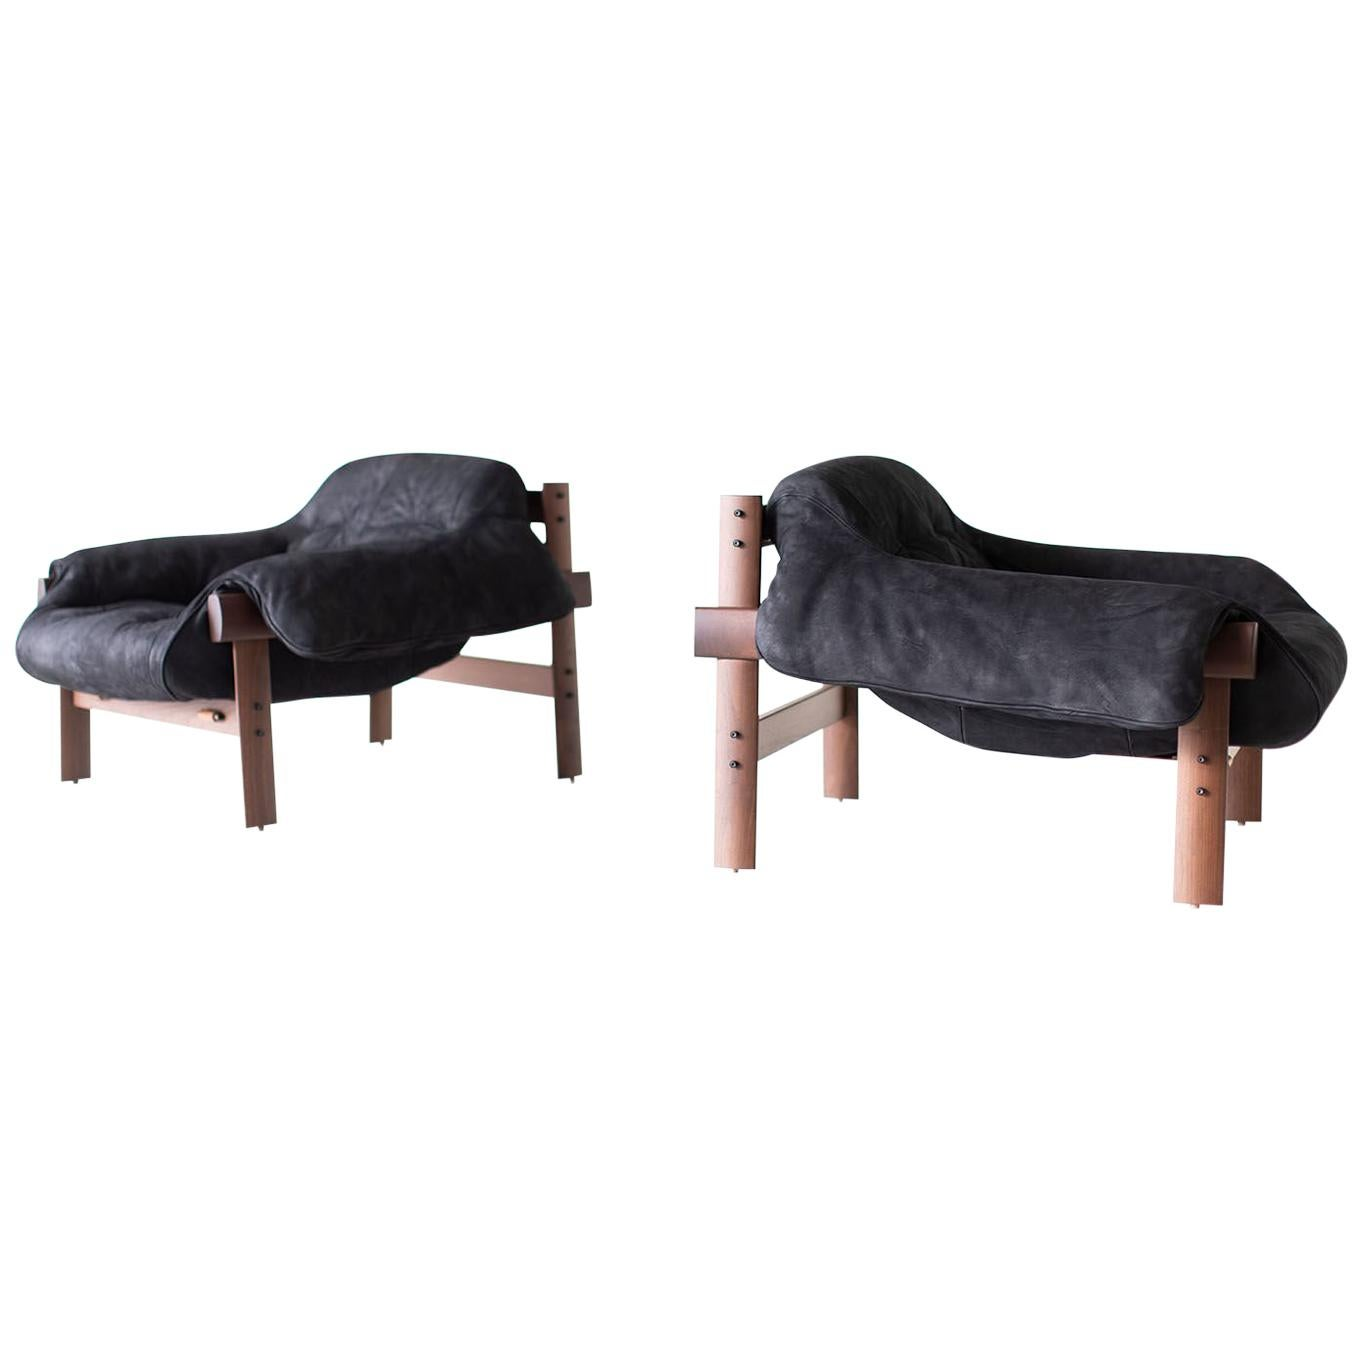 Percival Lafer MP-41 Lounge Chairs for Craft Associates